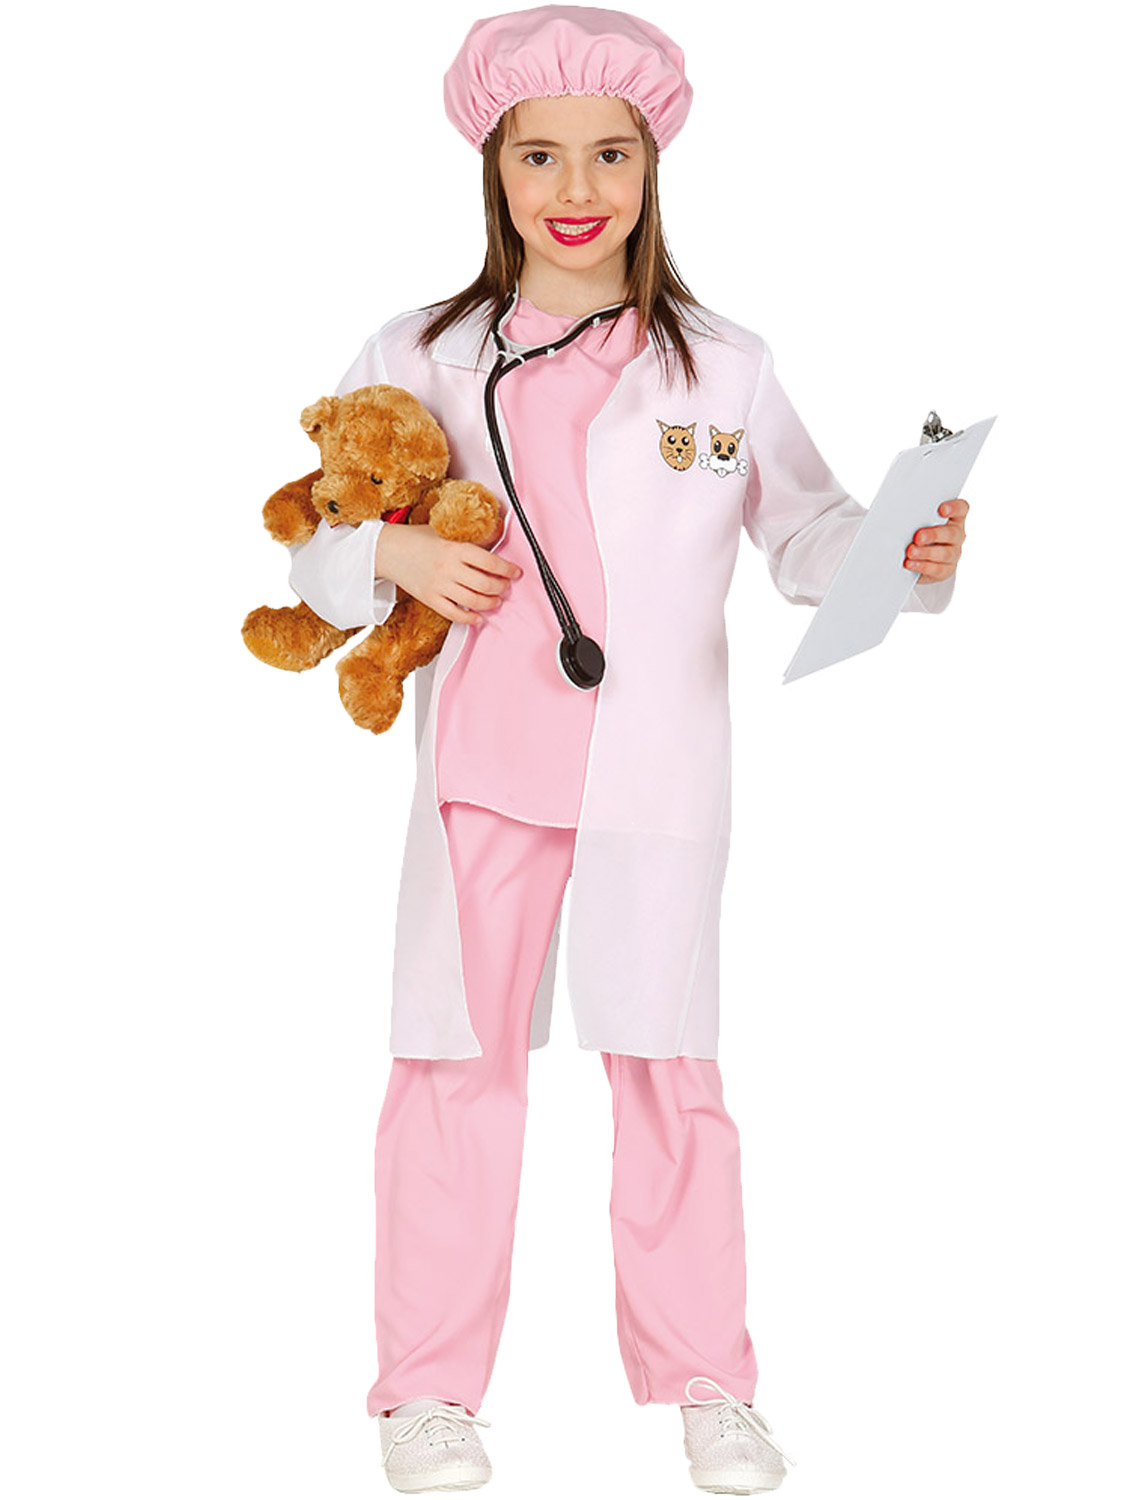 Girls-Vet-Costume-Childs-Animal-Doctor-Fancy-Dress-Kids-Book-Week-Day-Outfit 縮圖 4